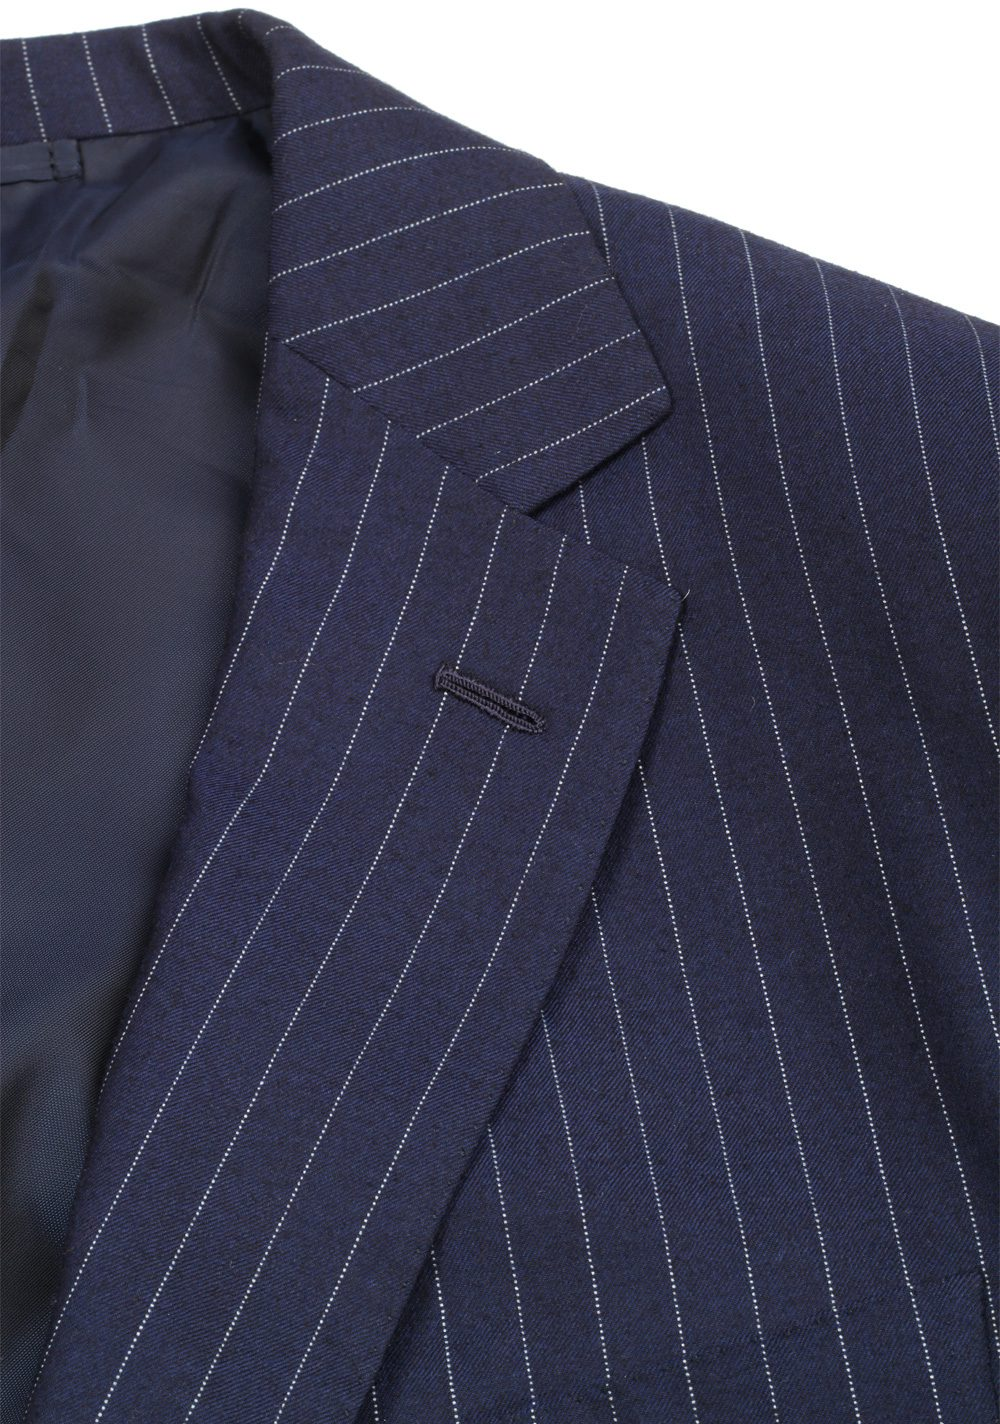 Ralph Lauren Purple Label Blue Suit Size 56 / 46 U.S. In Wool | Costume Limité